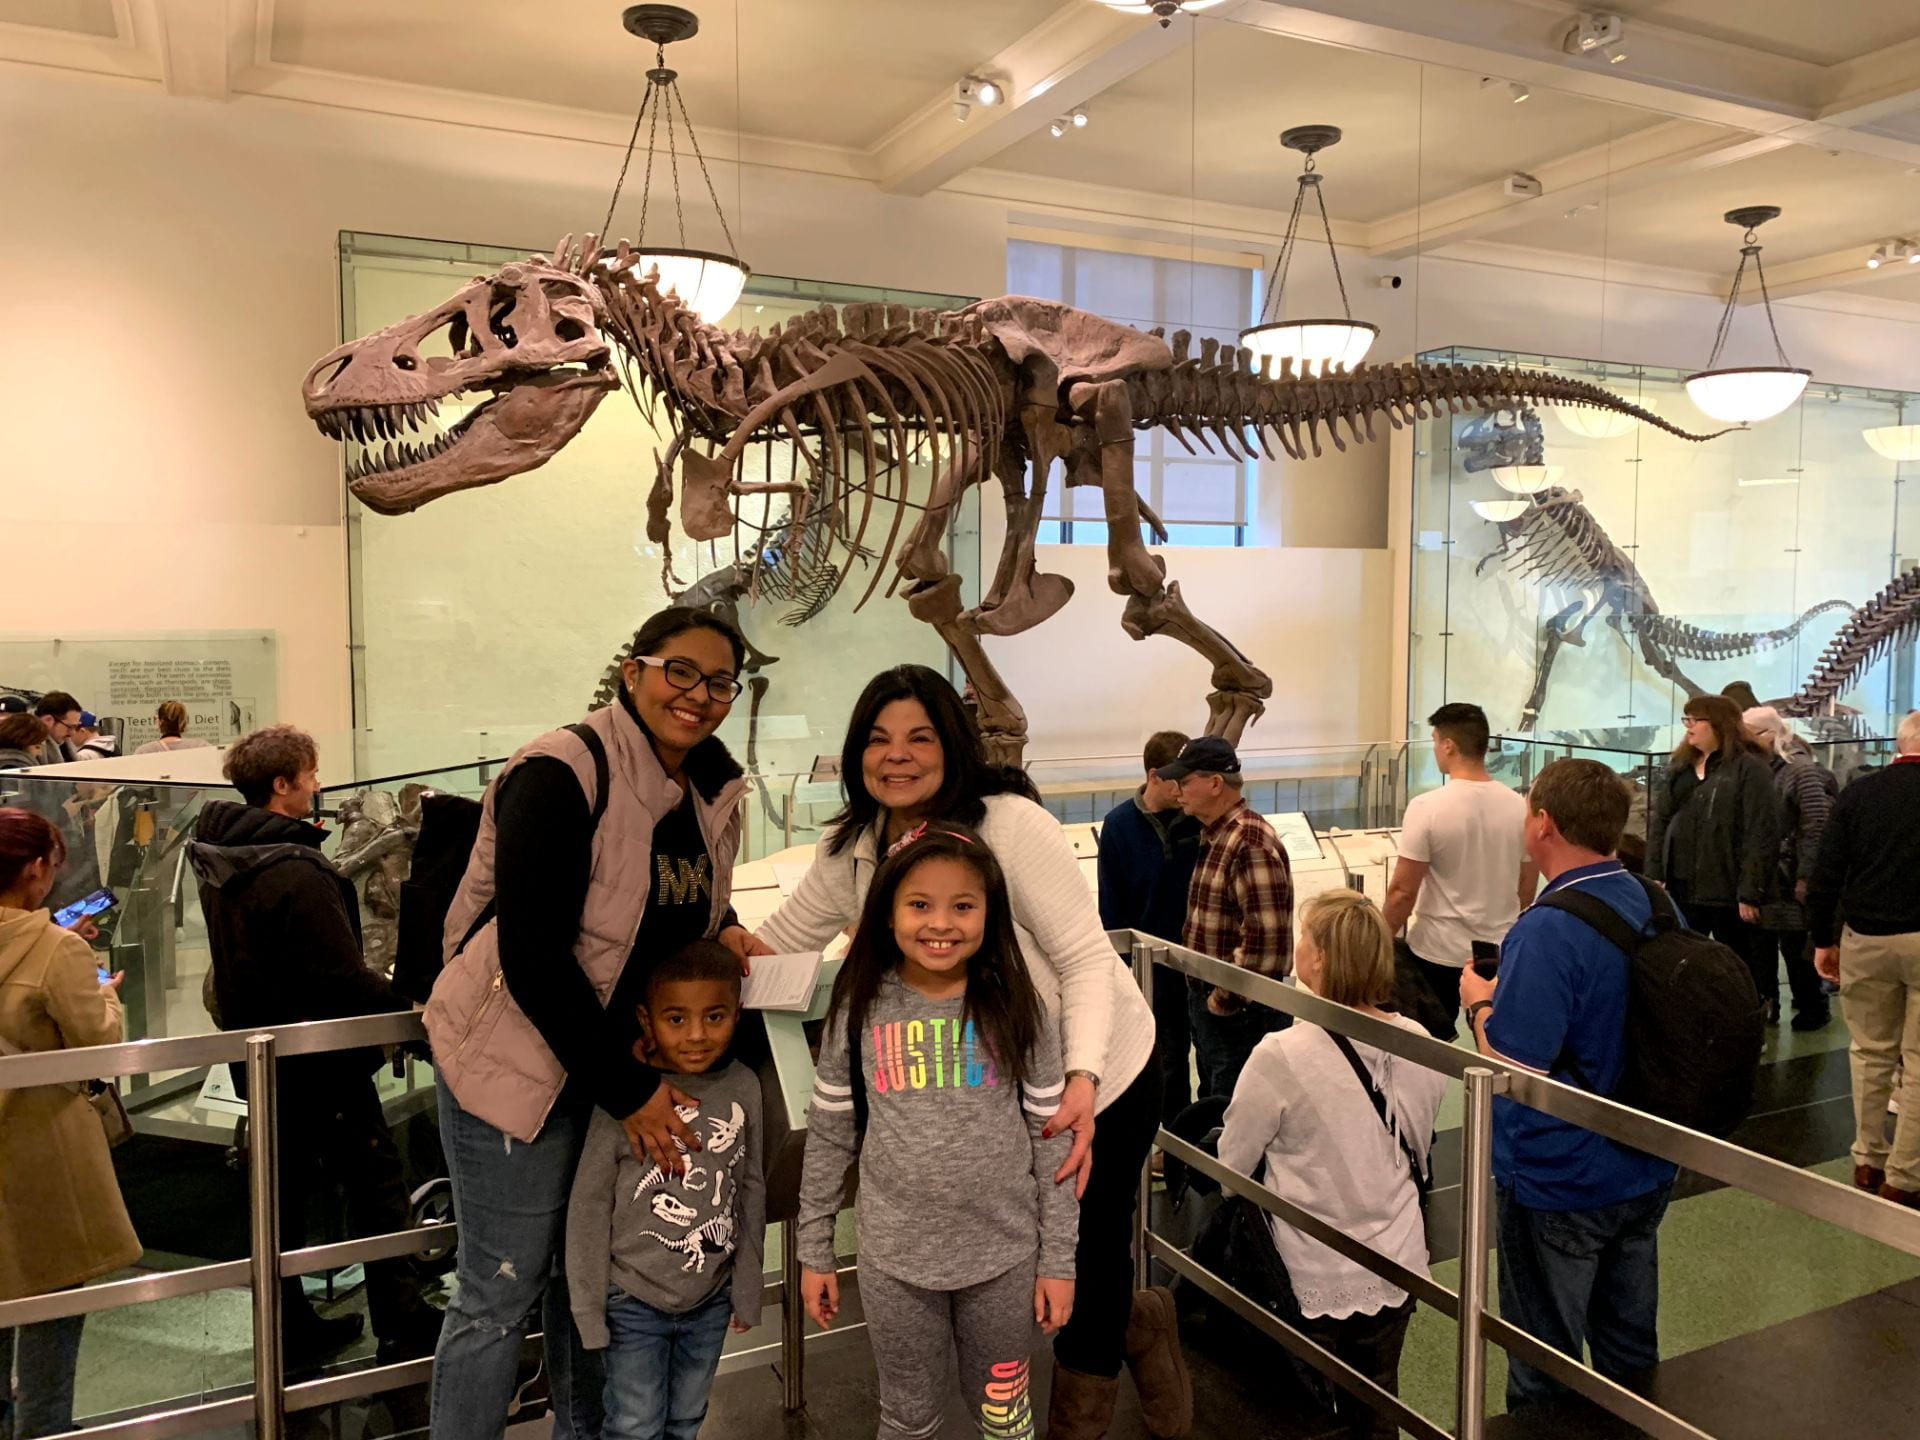 family posing for a photo at the museum of natural history